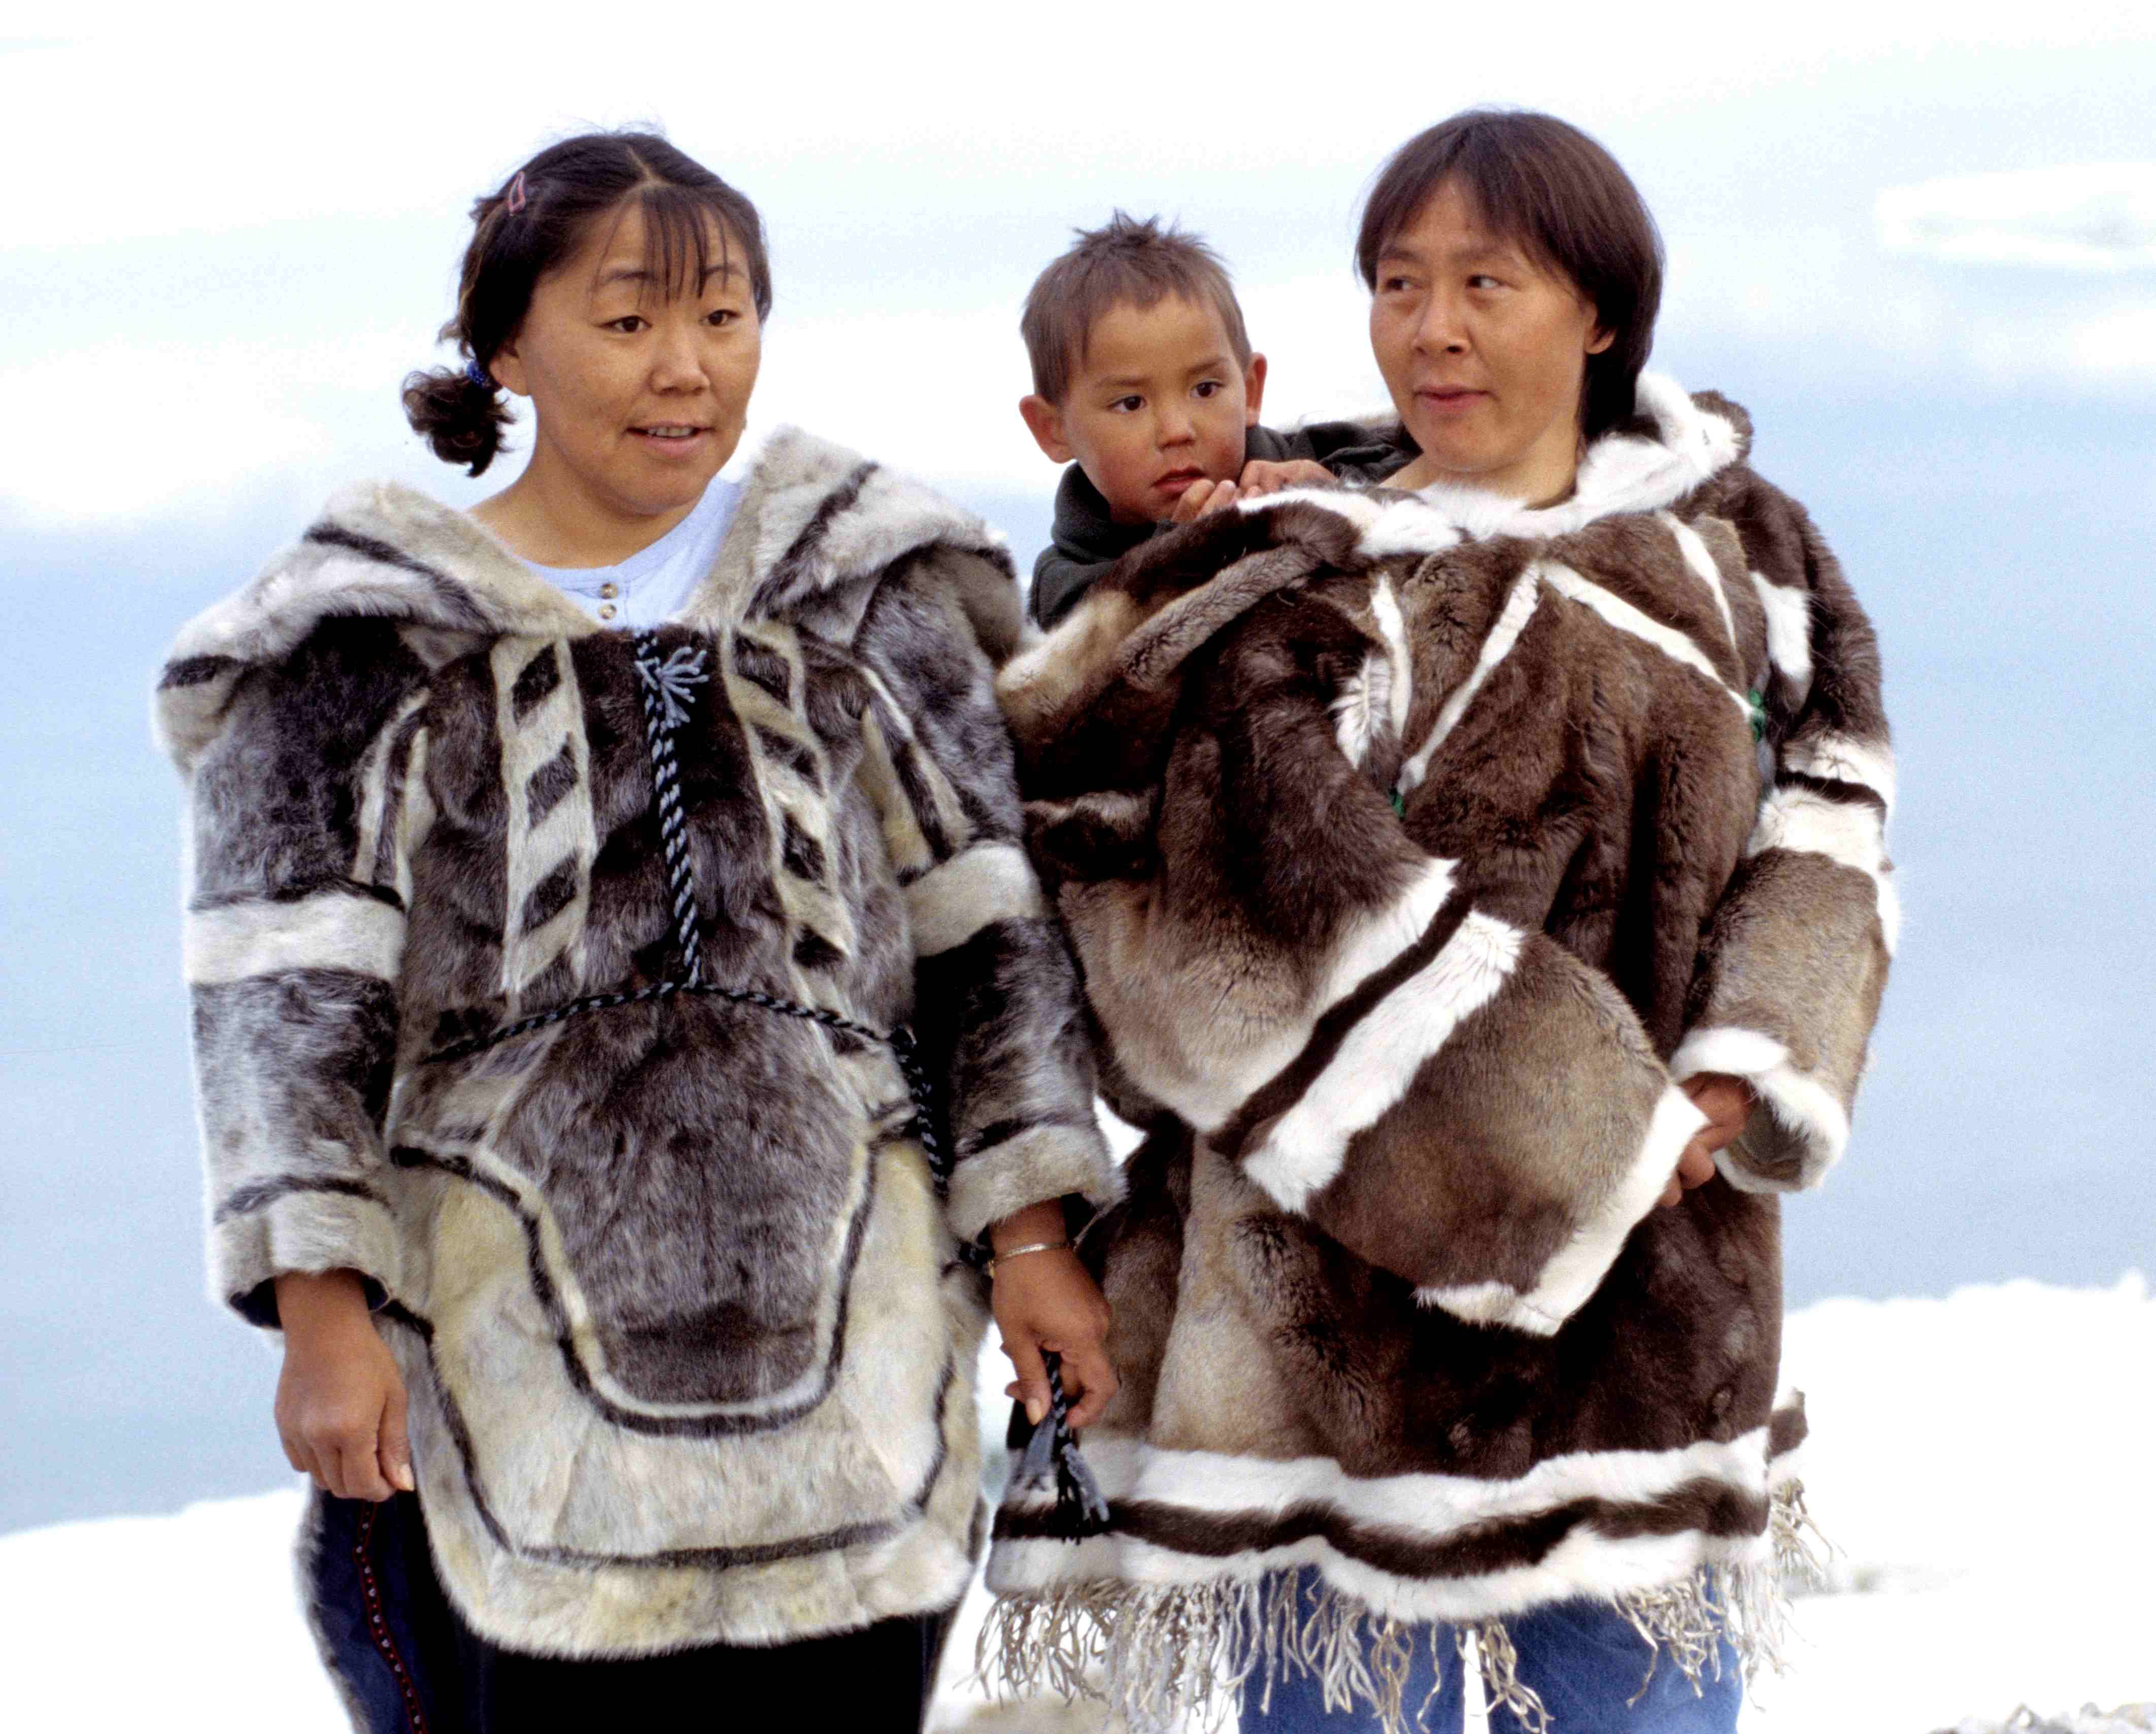 eskimo essay life see them we yupik Eskimos in alaskan society essay and siberian yupik a lot of the eskimo families western culture and the eskimo culture in history, we as the readers know.